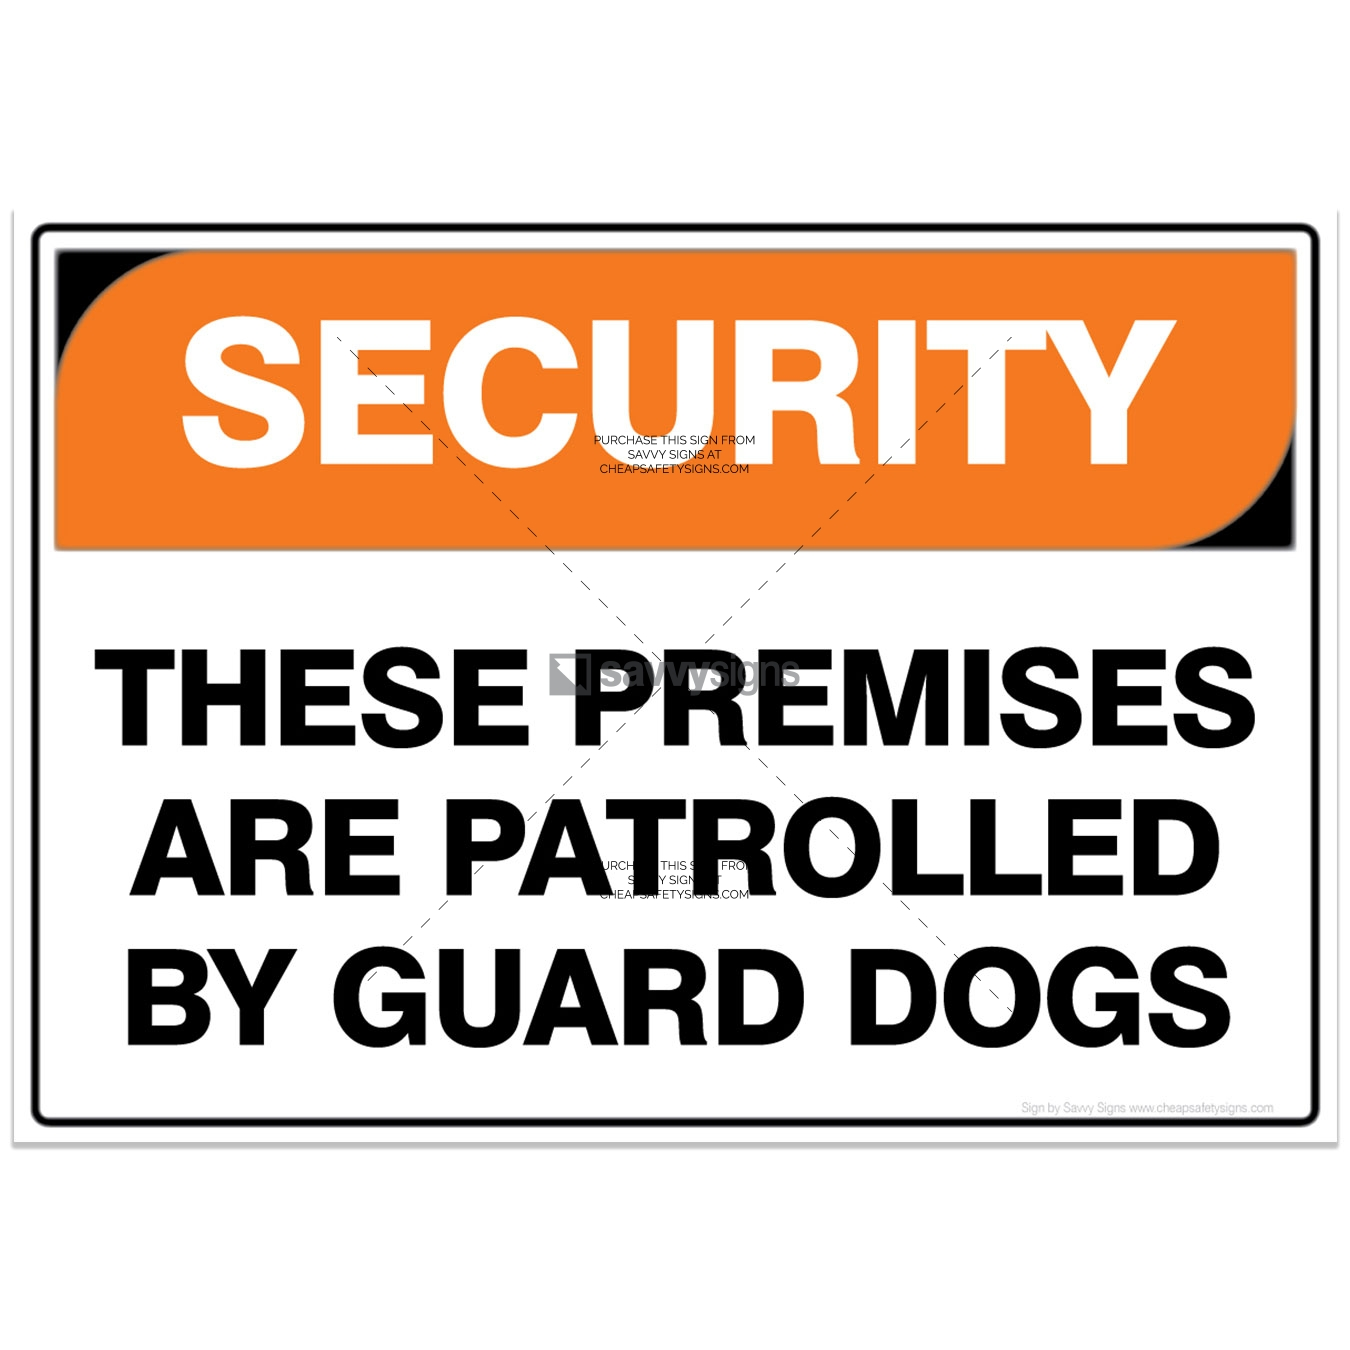 SSSEC3020-SECURITY-Workplace-Safety-Signs_Savvy-Signs_v3